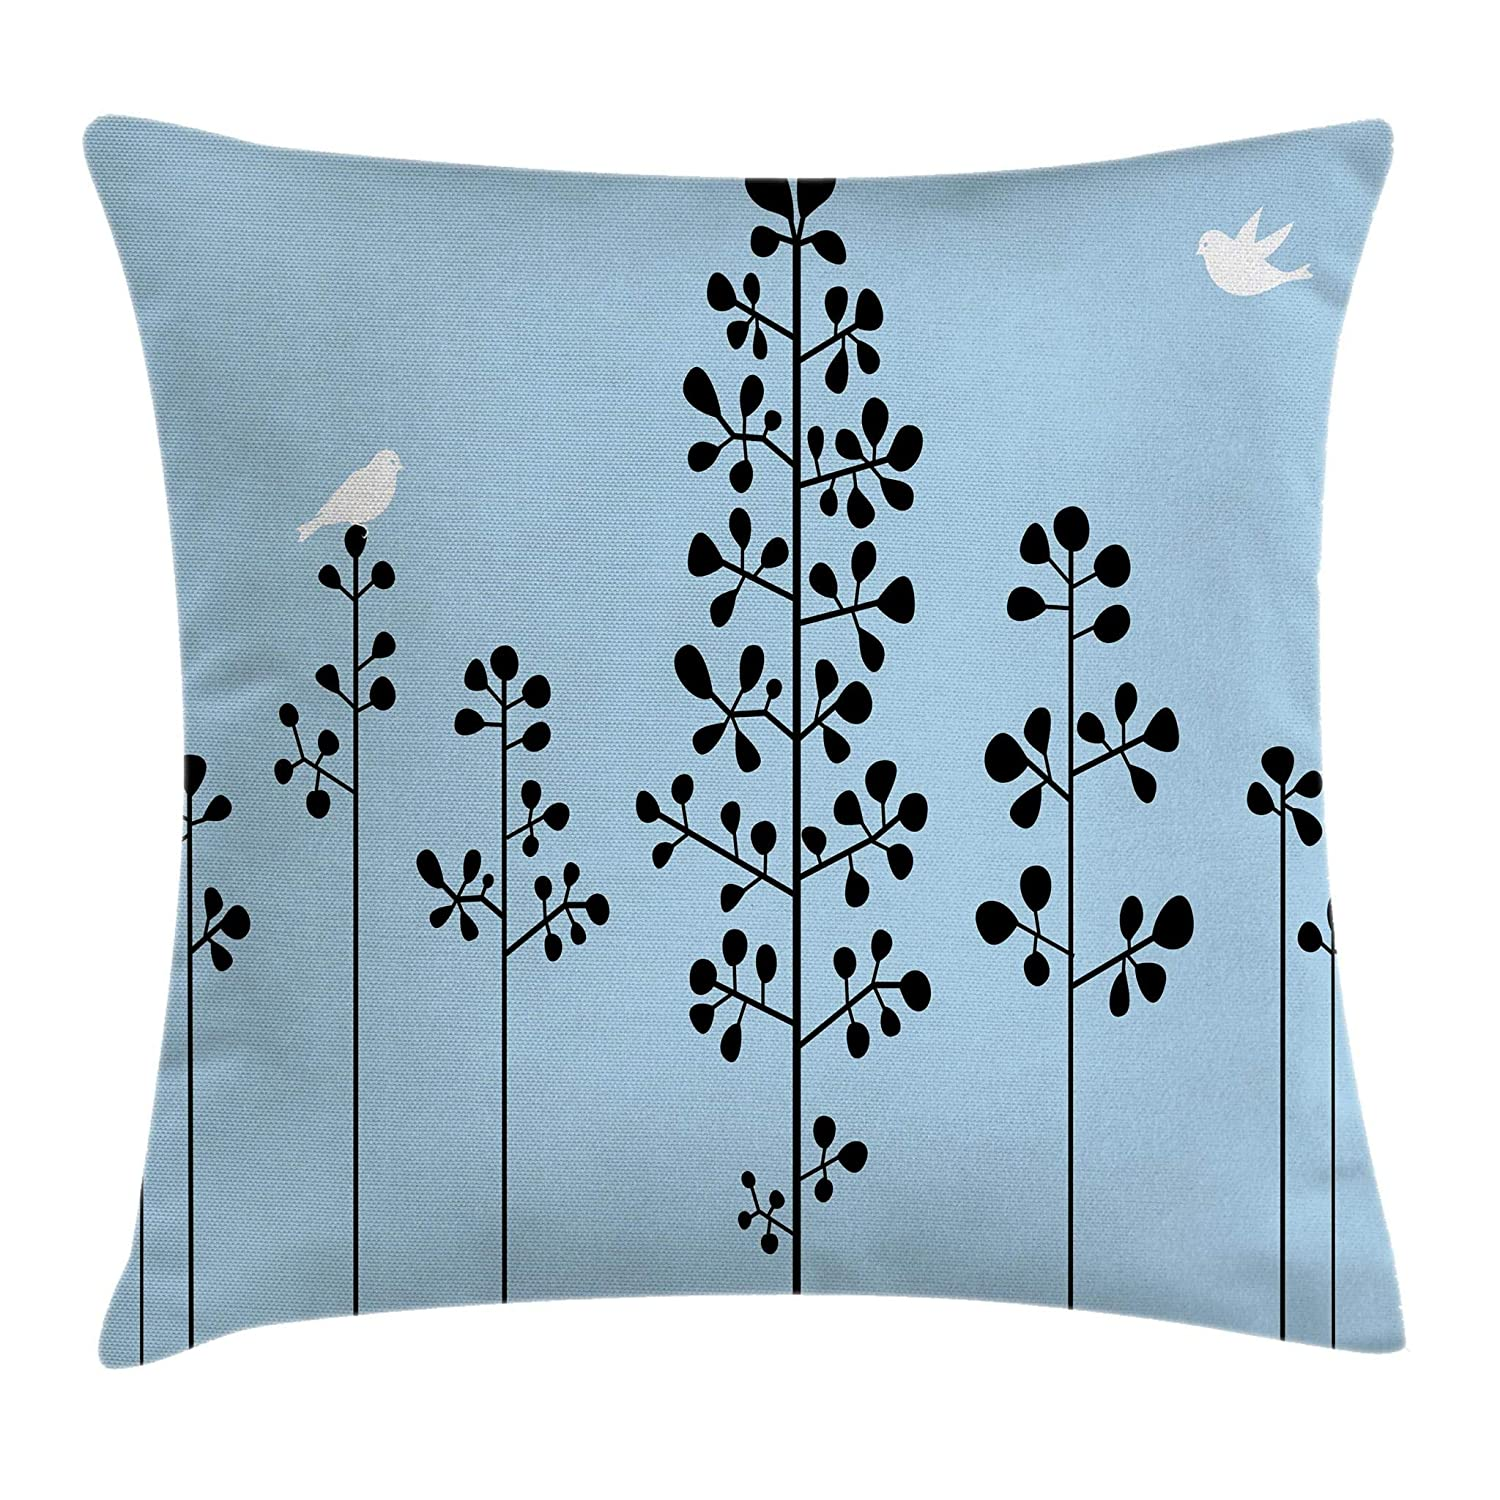 Buy Ambesonne Abstract Throw Pillow Cushion Cover Silhouette Of Birds Sitting On Tree Branch Sky Spring Inspired Illustration Decorative Square Accent Pillow Case 20 X 20 Blue Black Online At Low Prices In India Amazon In